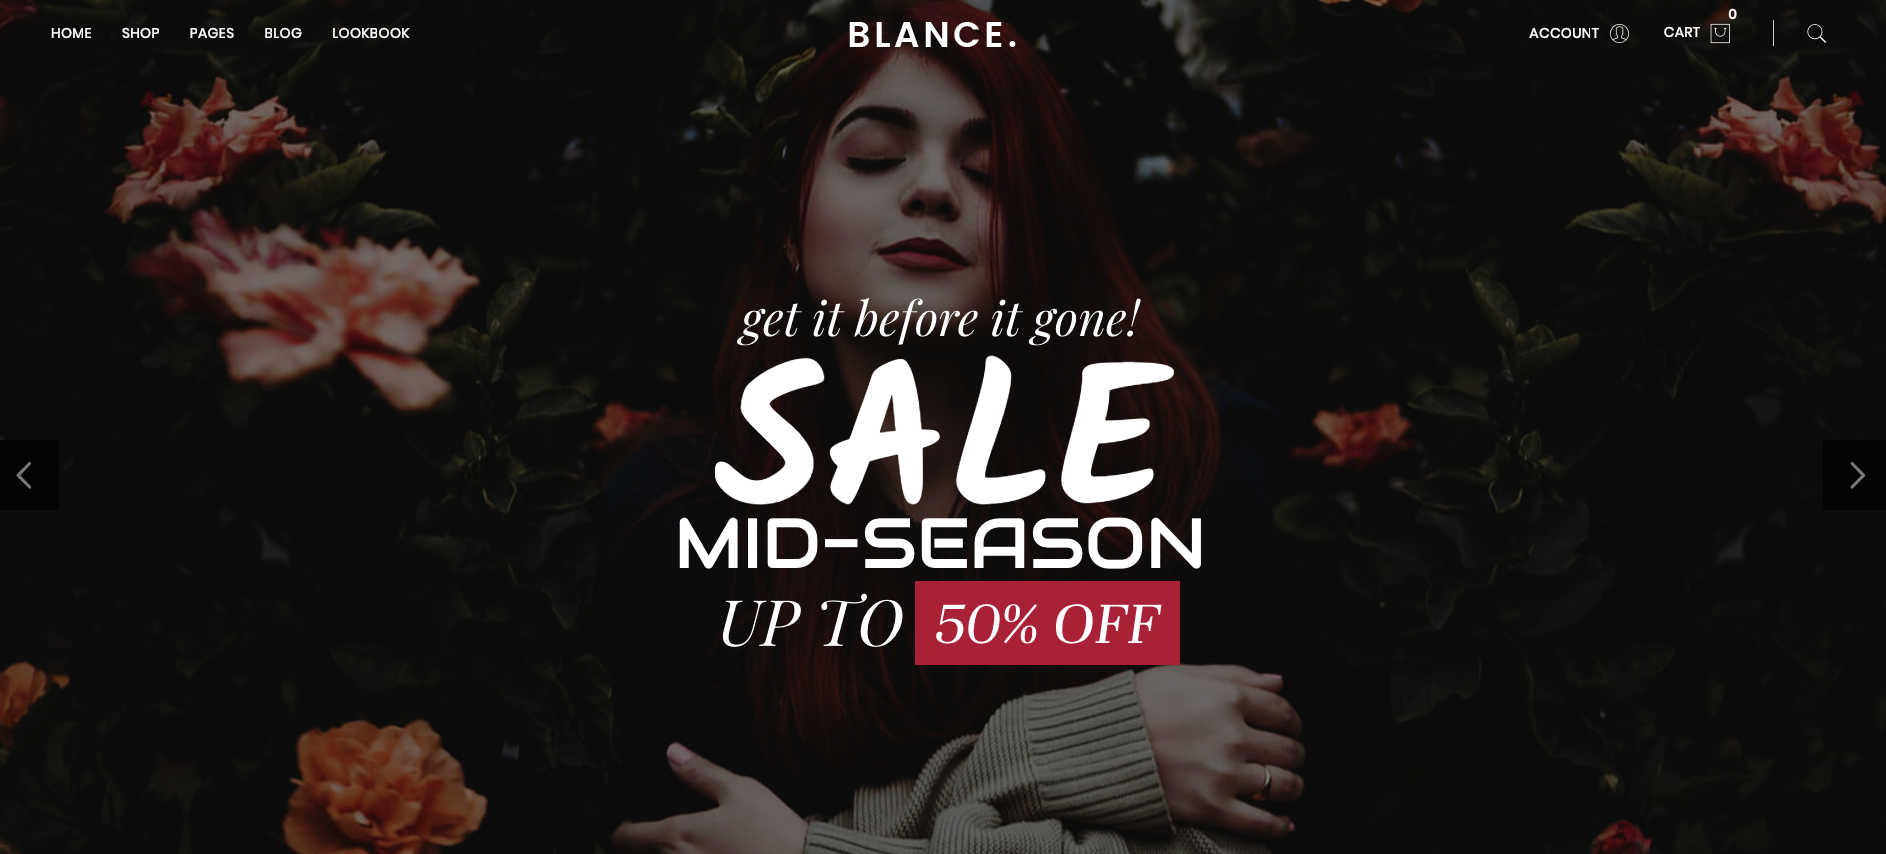 Blance 2.0.0: A Best Minimal WooCommerce Theme Designed to Sell 2019